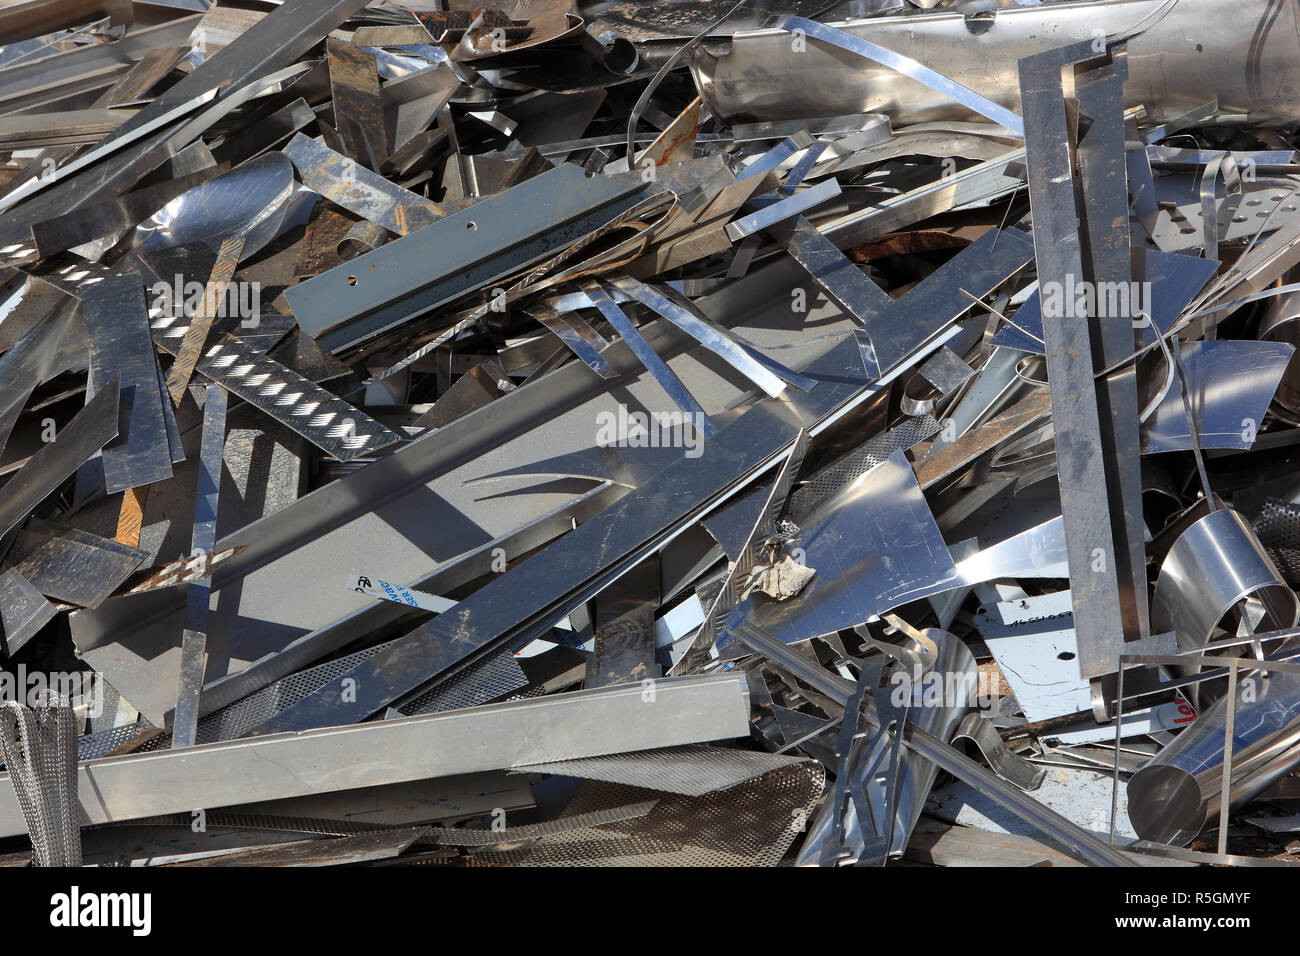 Metal waste of an industrial type on a shotcrete in a recycling plant, Germany - Stock Image